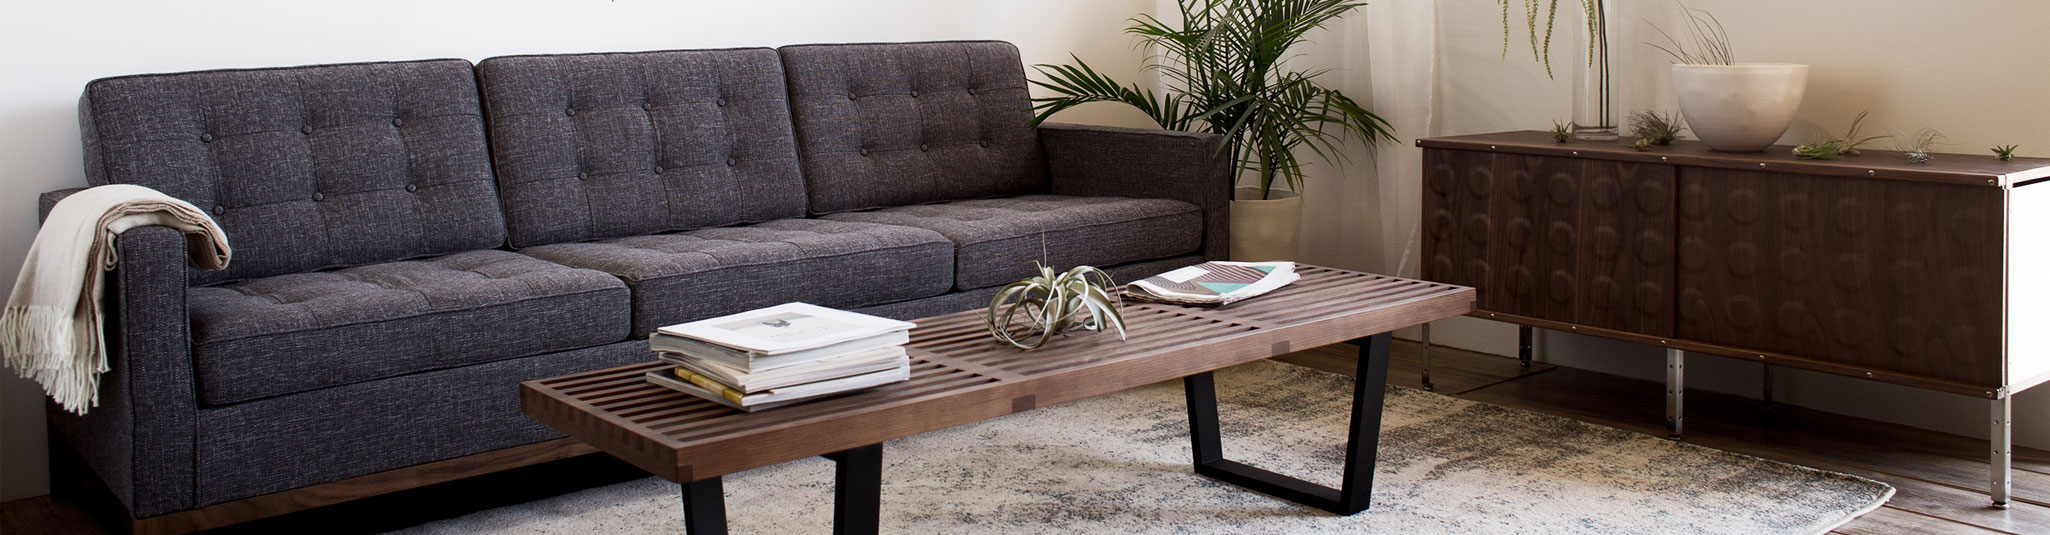 Modern furniture and lighting Mirrored Furniture Midcentury Modern Furniture Rentals Are Scarce And Expensive Weve Decided To Change That Now Not Only Are All Of Our Thoughtfully Curated Design Chaplins Rentals France And Son France Son